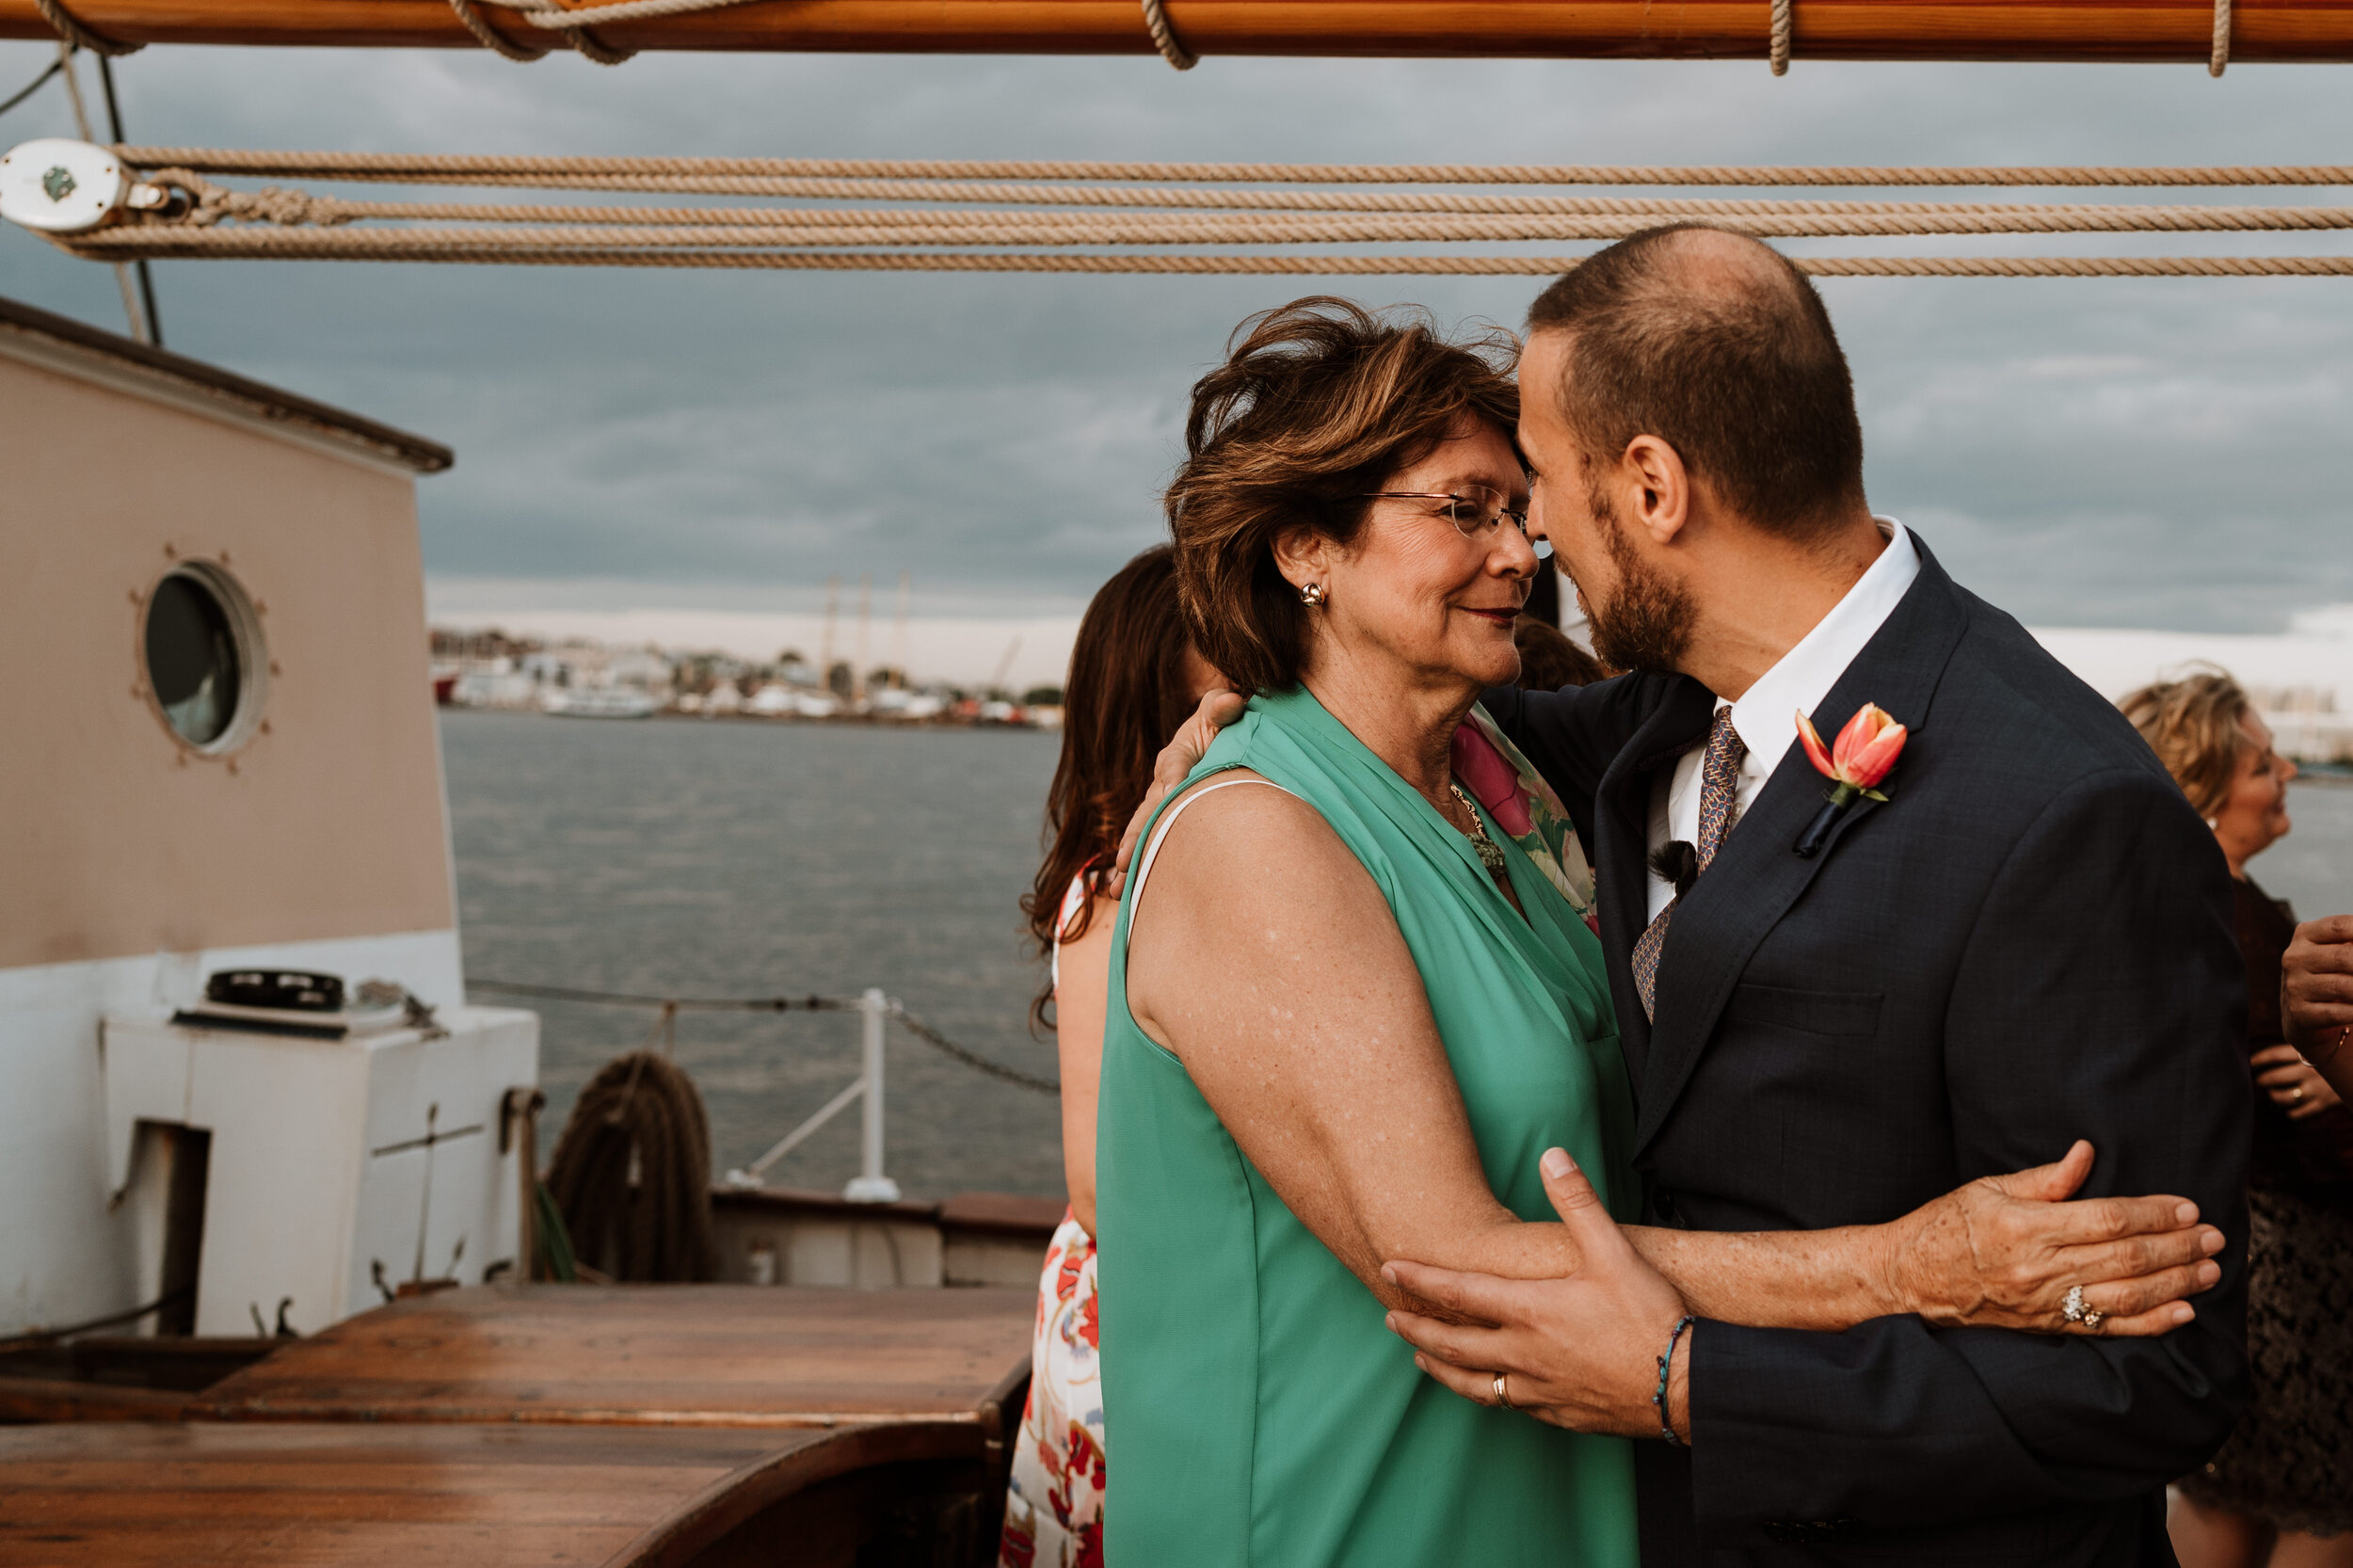 Boston Wedding Liberty Clipper Intimate Wedding Photography 27